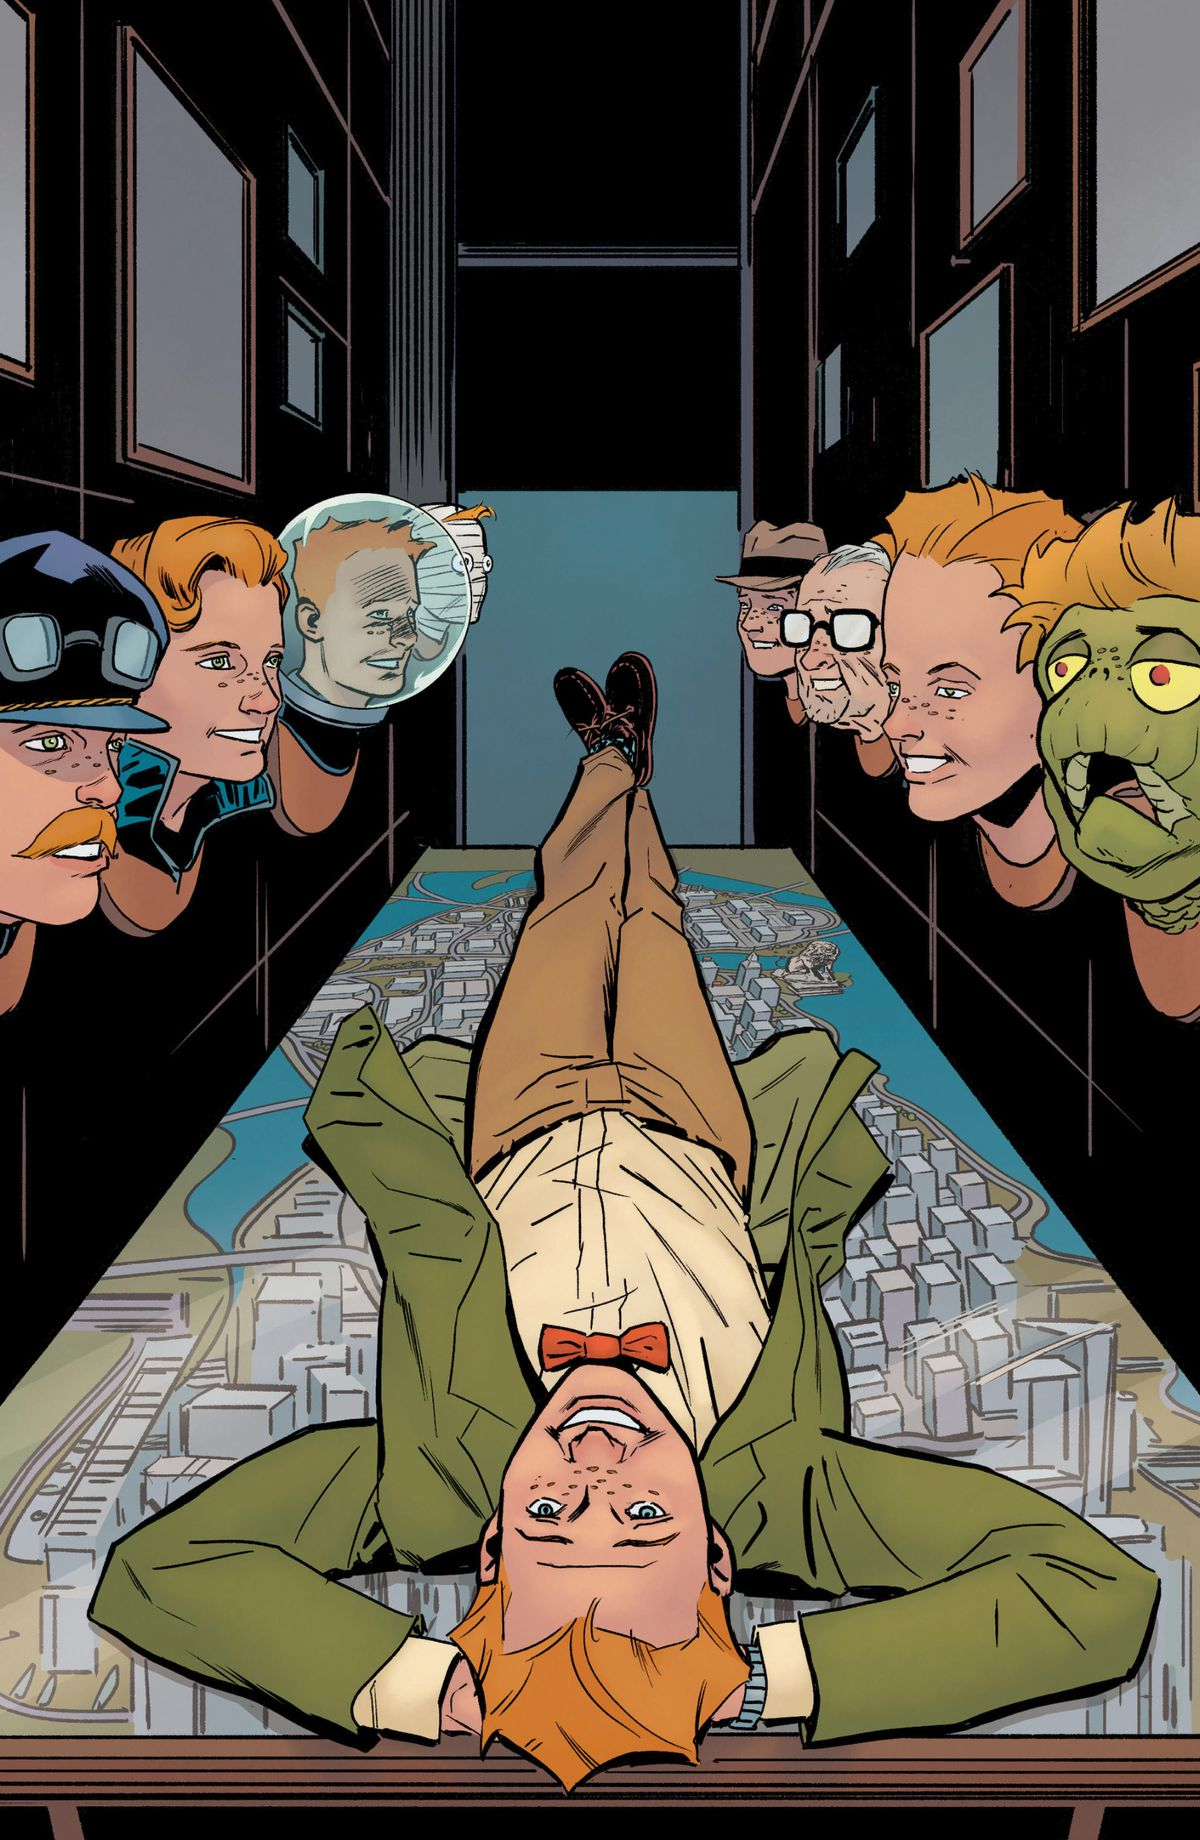 Jimmy Olsen lies supine, hands behind his smiling head on top of a map of Metropolis. He is overlooked by mounted trophy heads of himself in various disguises and transformations, on the cover of Superman's Pal Jimmy Olsen (2020).